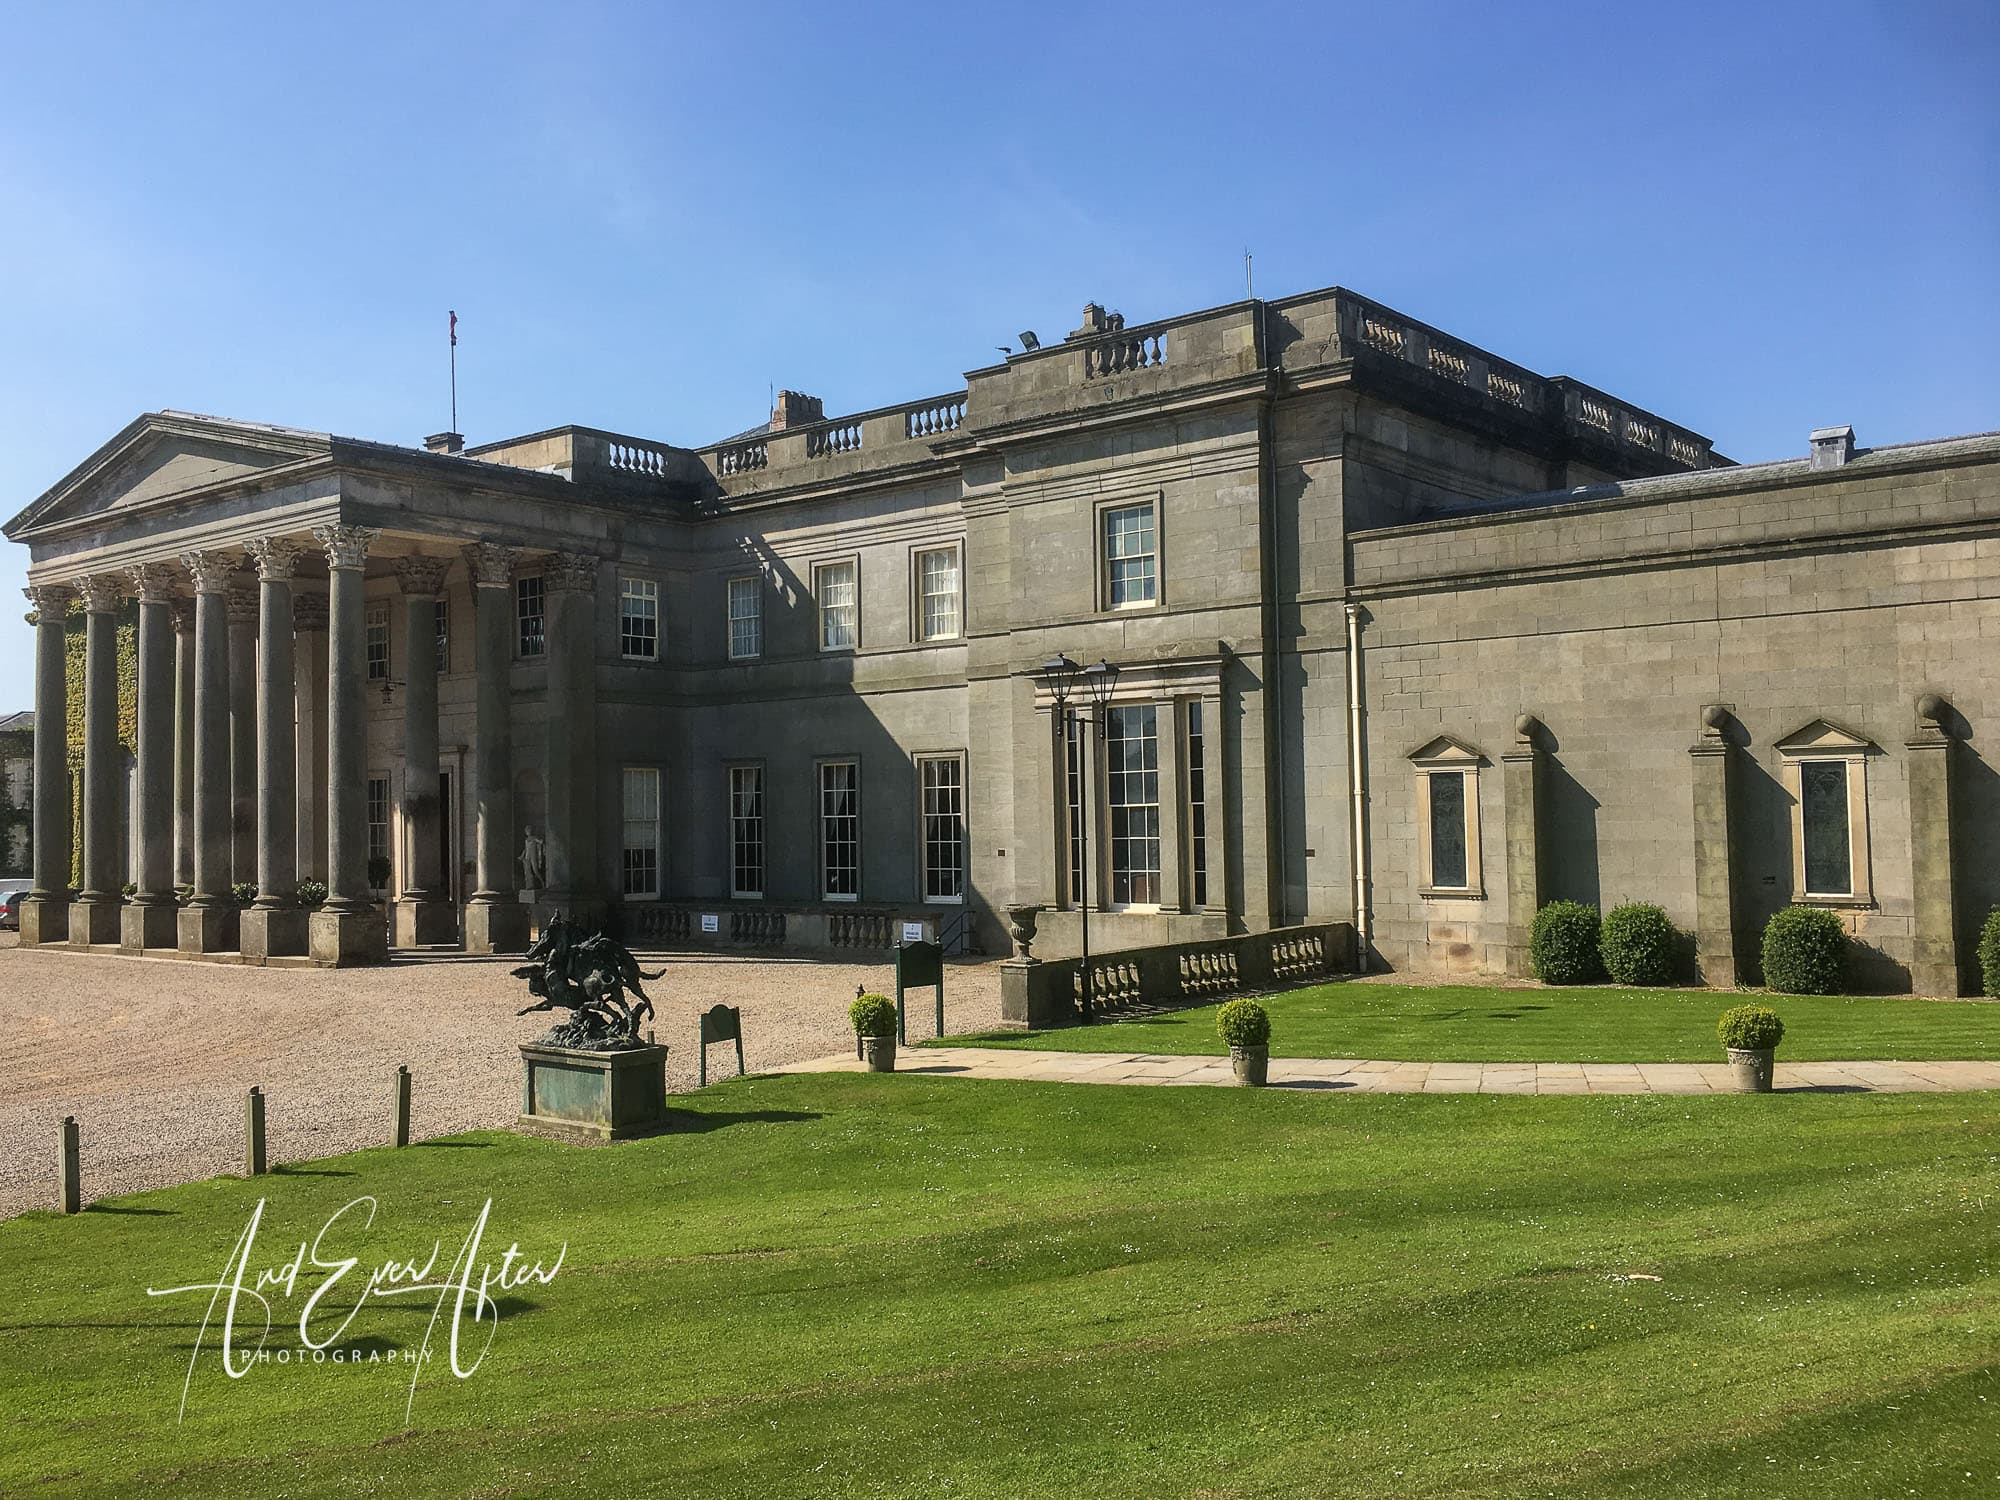 Wedding venue, wynyard hall wedding photo